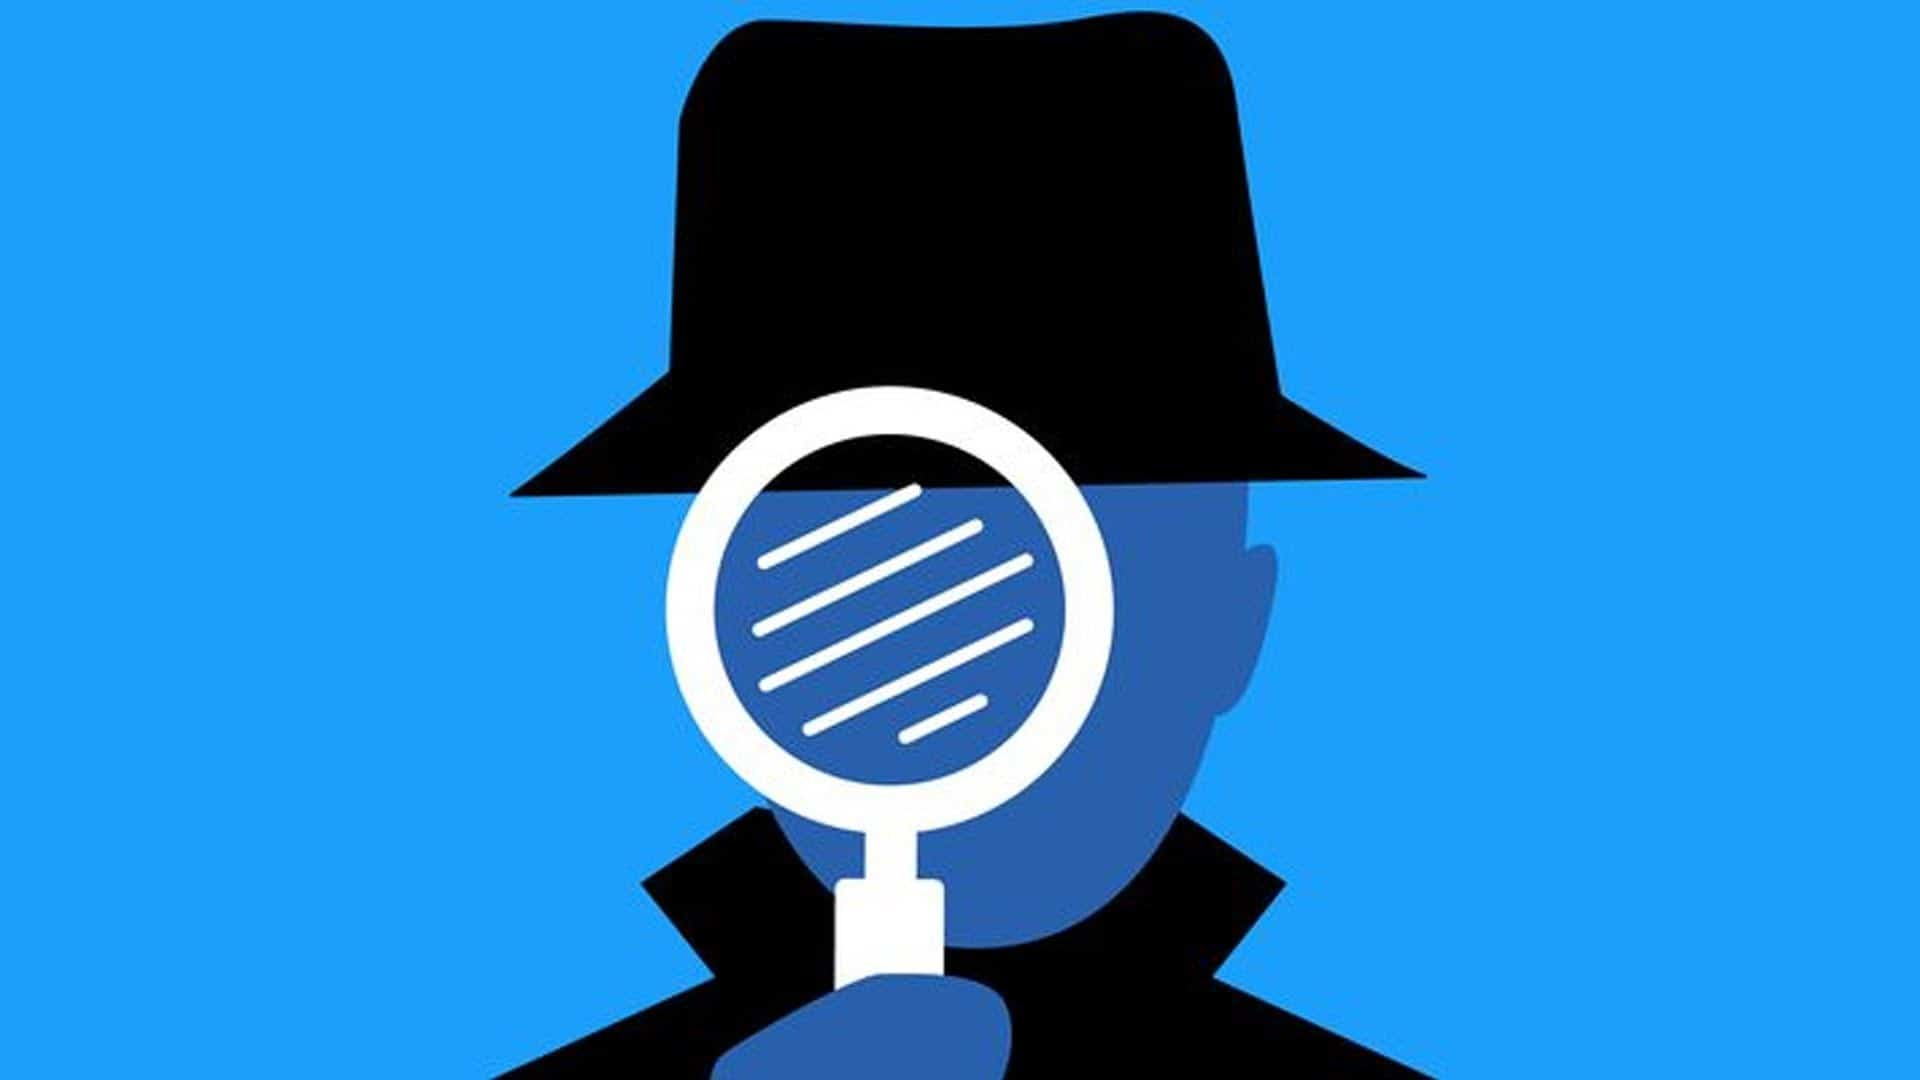 About FreePhoneSpy for Hacking Instagram Private Account, Photos and Video